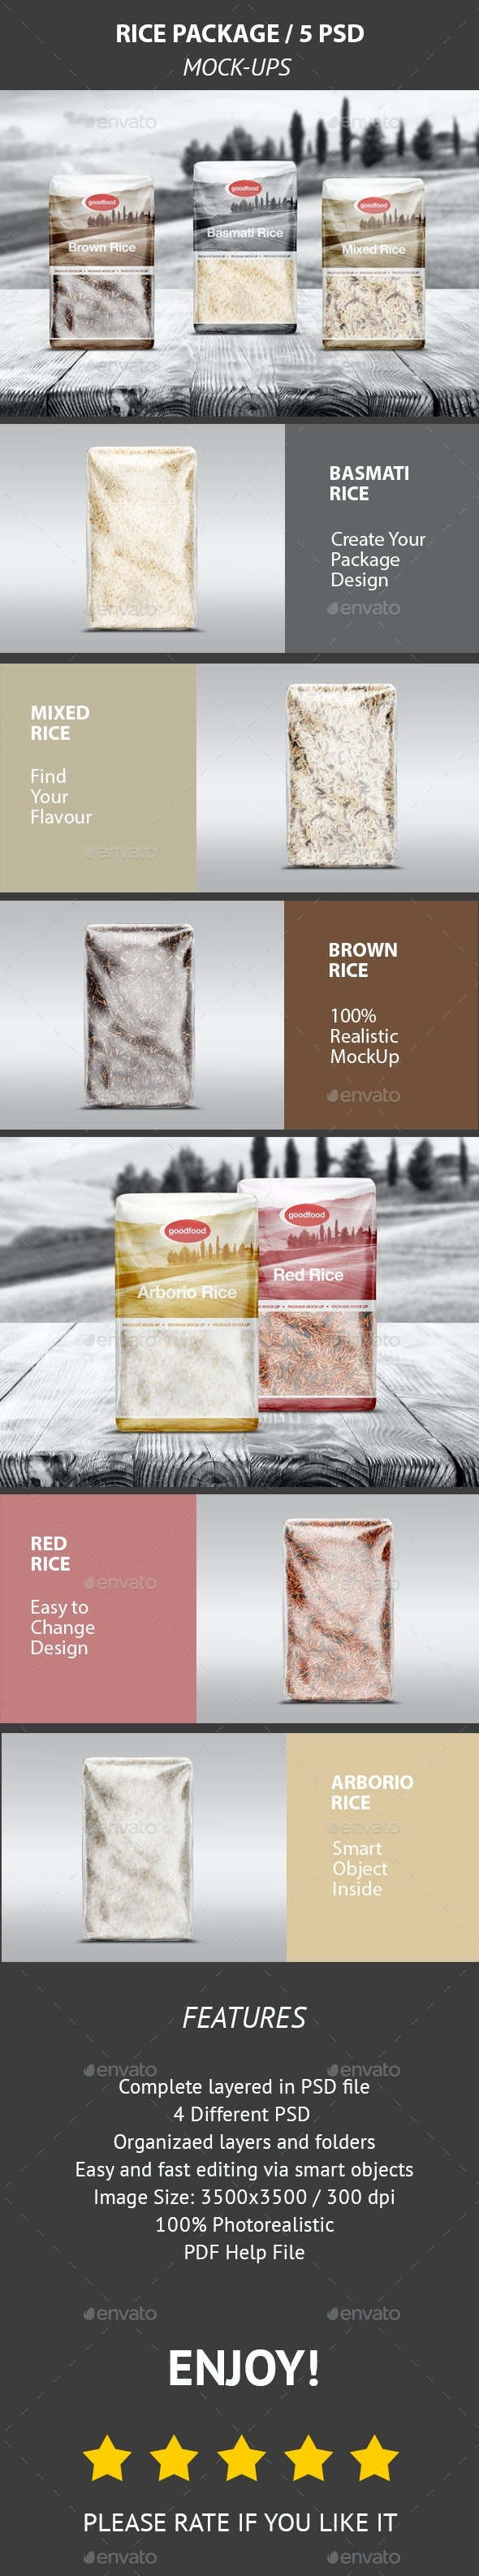 Rice Package Mock-Up / 5 PSD - Food and Drink Packaging